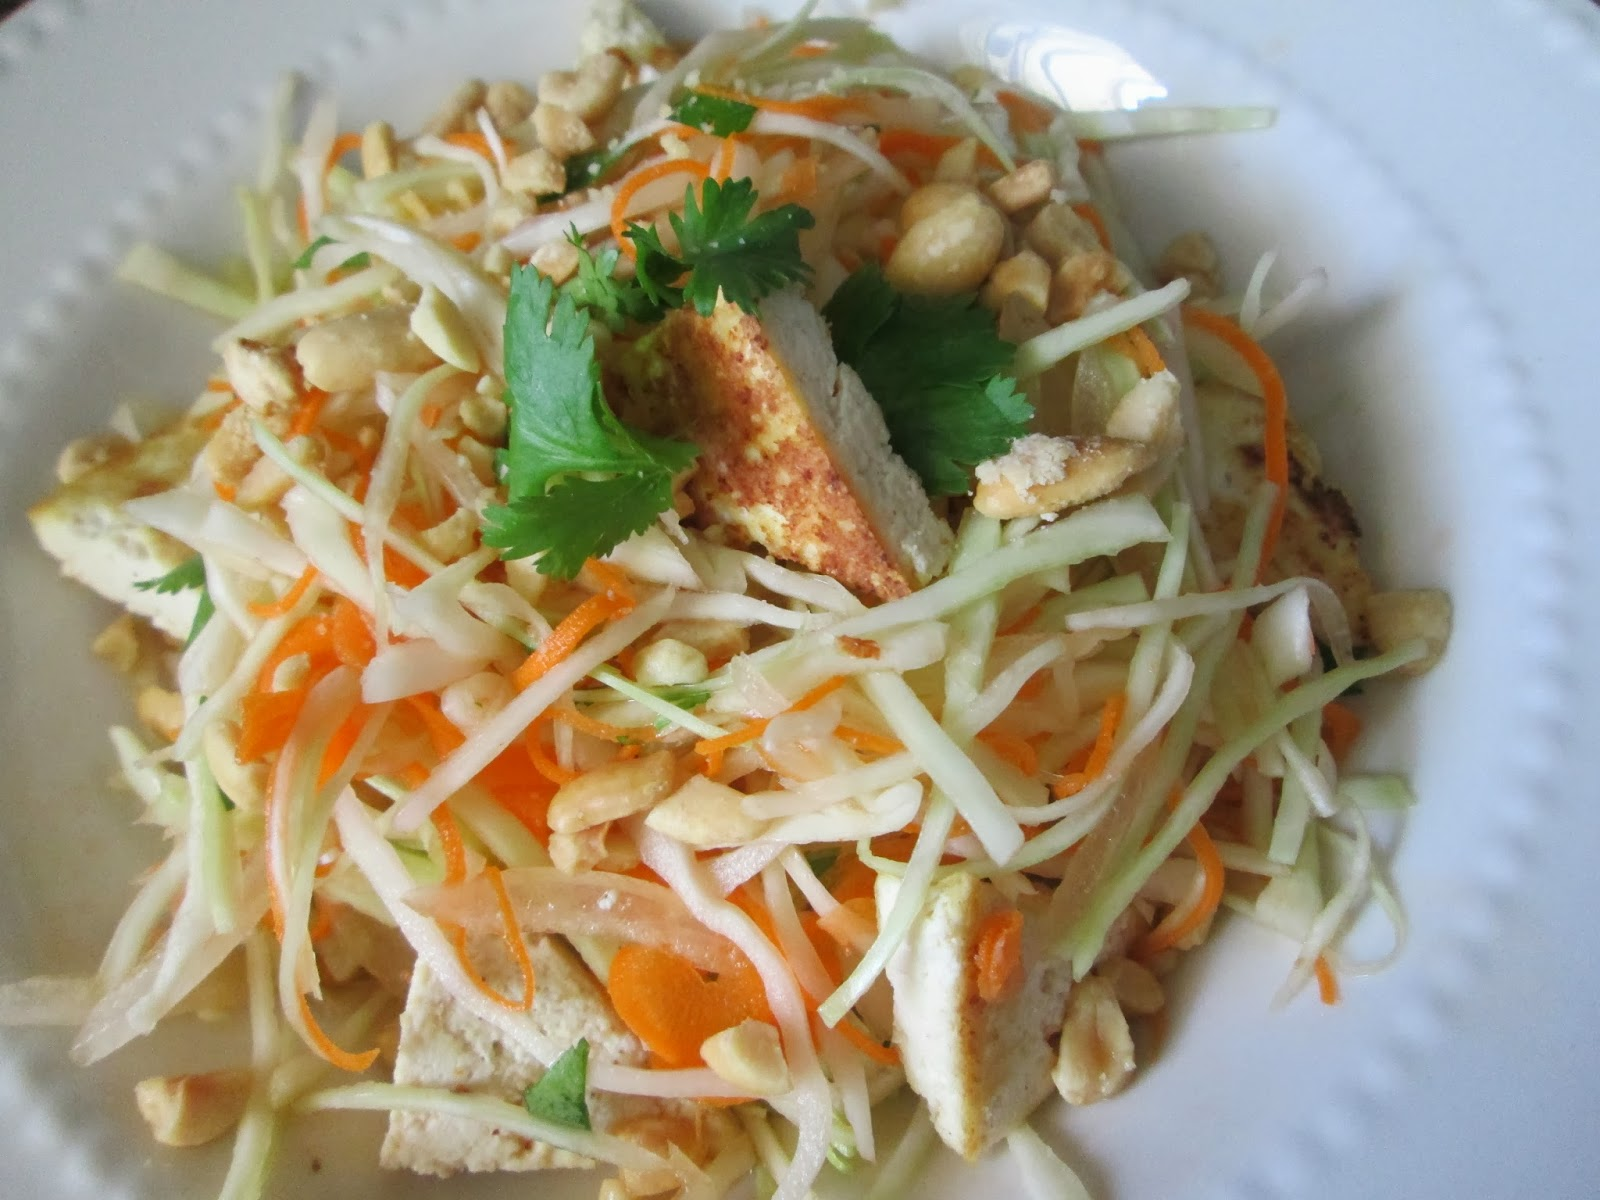 Don't Get Mad, Get Vegan!: Vietnamese Tofu Cabbage Salad